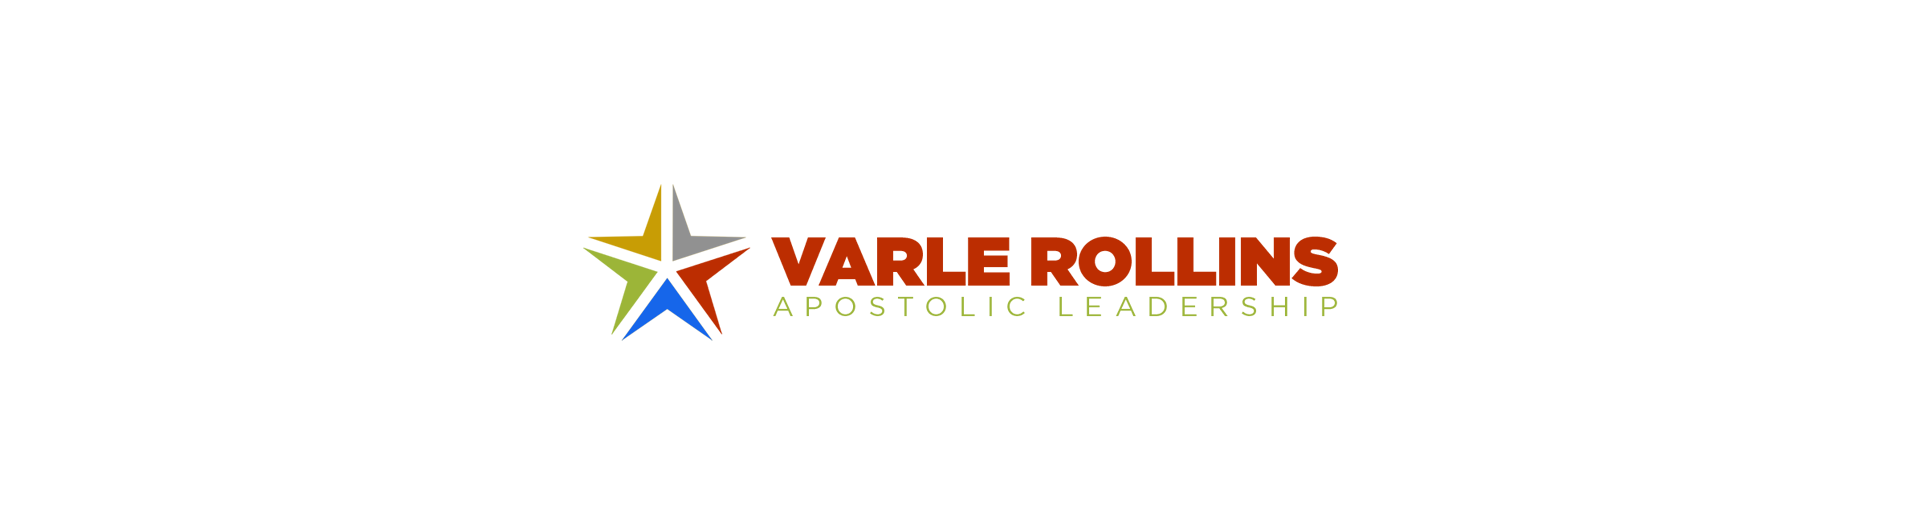 Varle Rollins Ministries » APOSTOLIC TRAINING SCHOOL